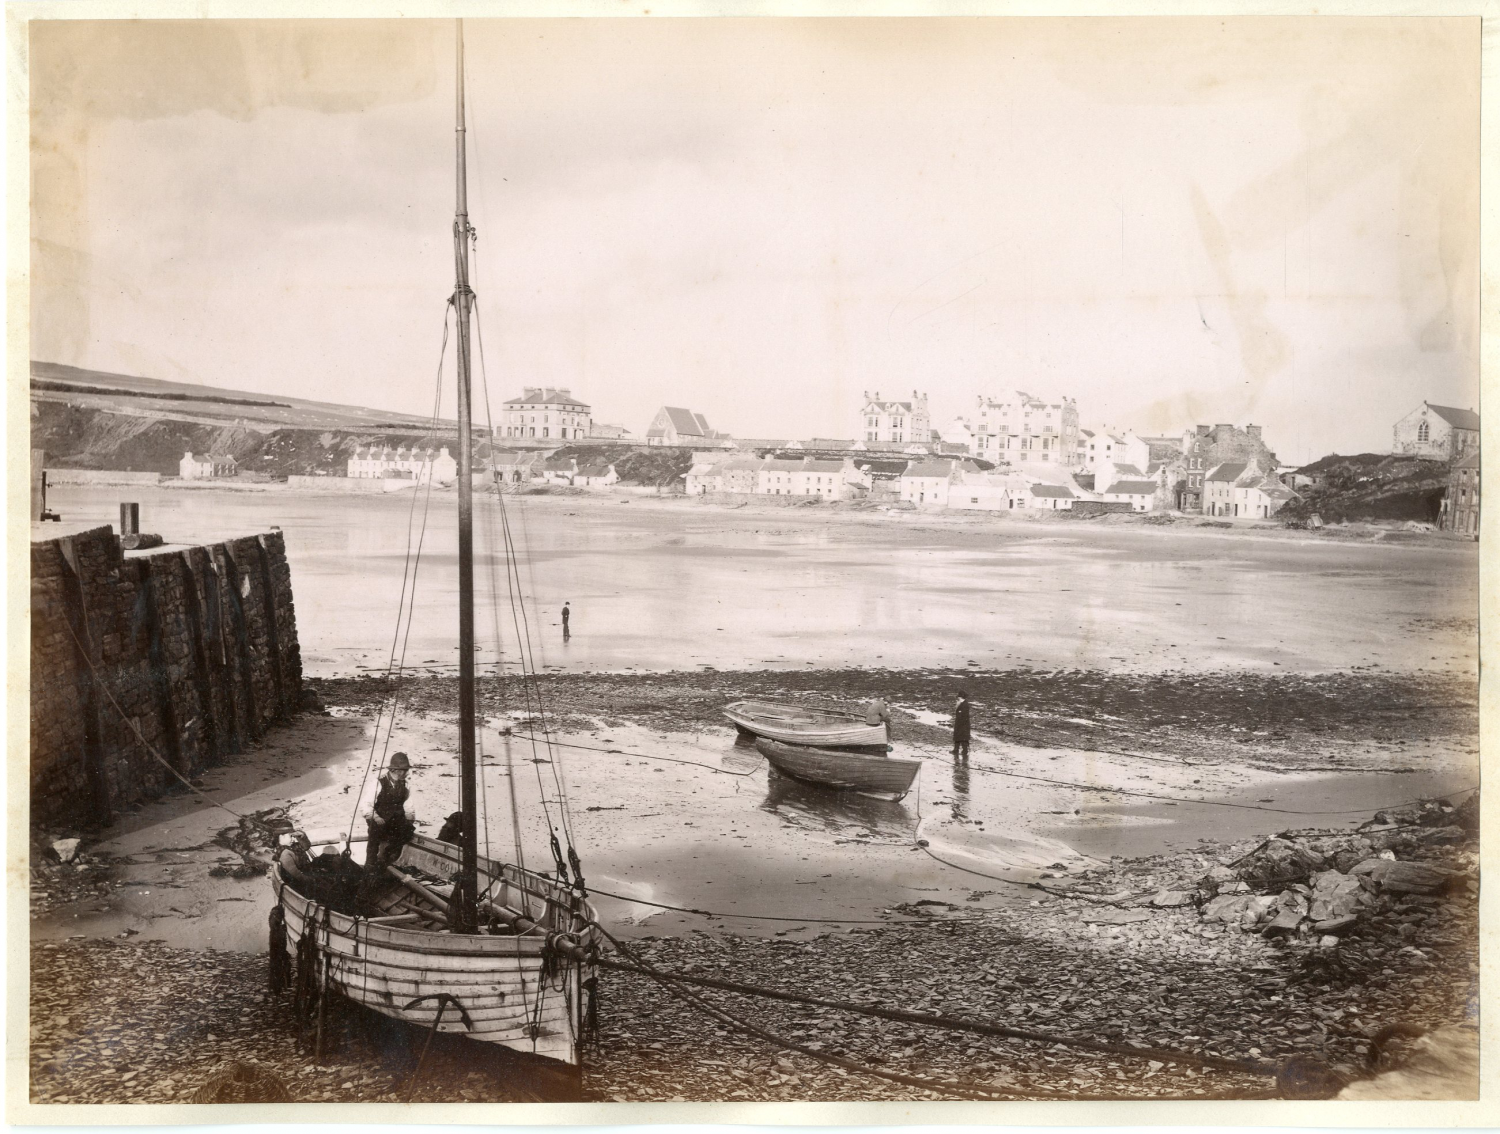 Angleterre, Ville à identifier, ca. 1875    #Europe #Angleterre_Great_Britain #Angleterre_Divers